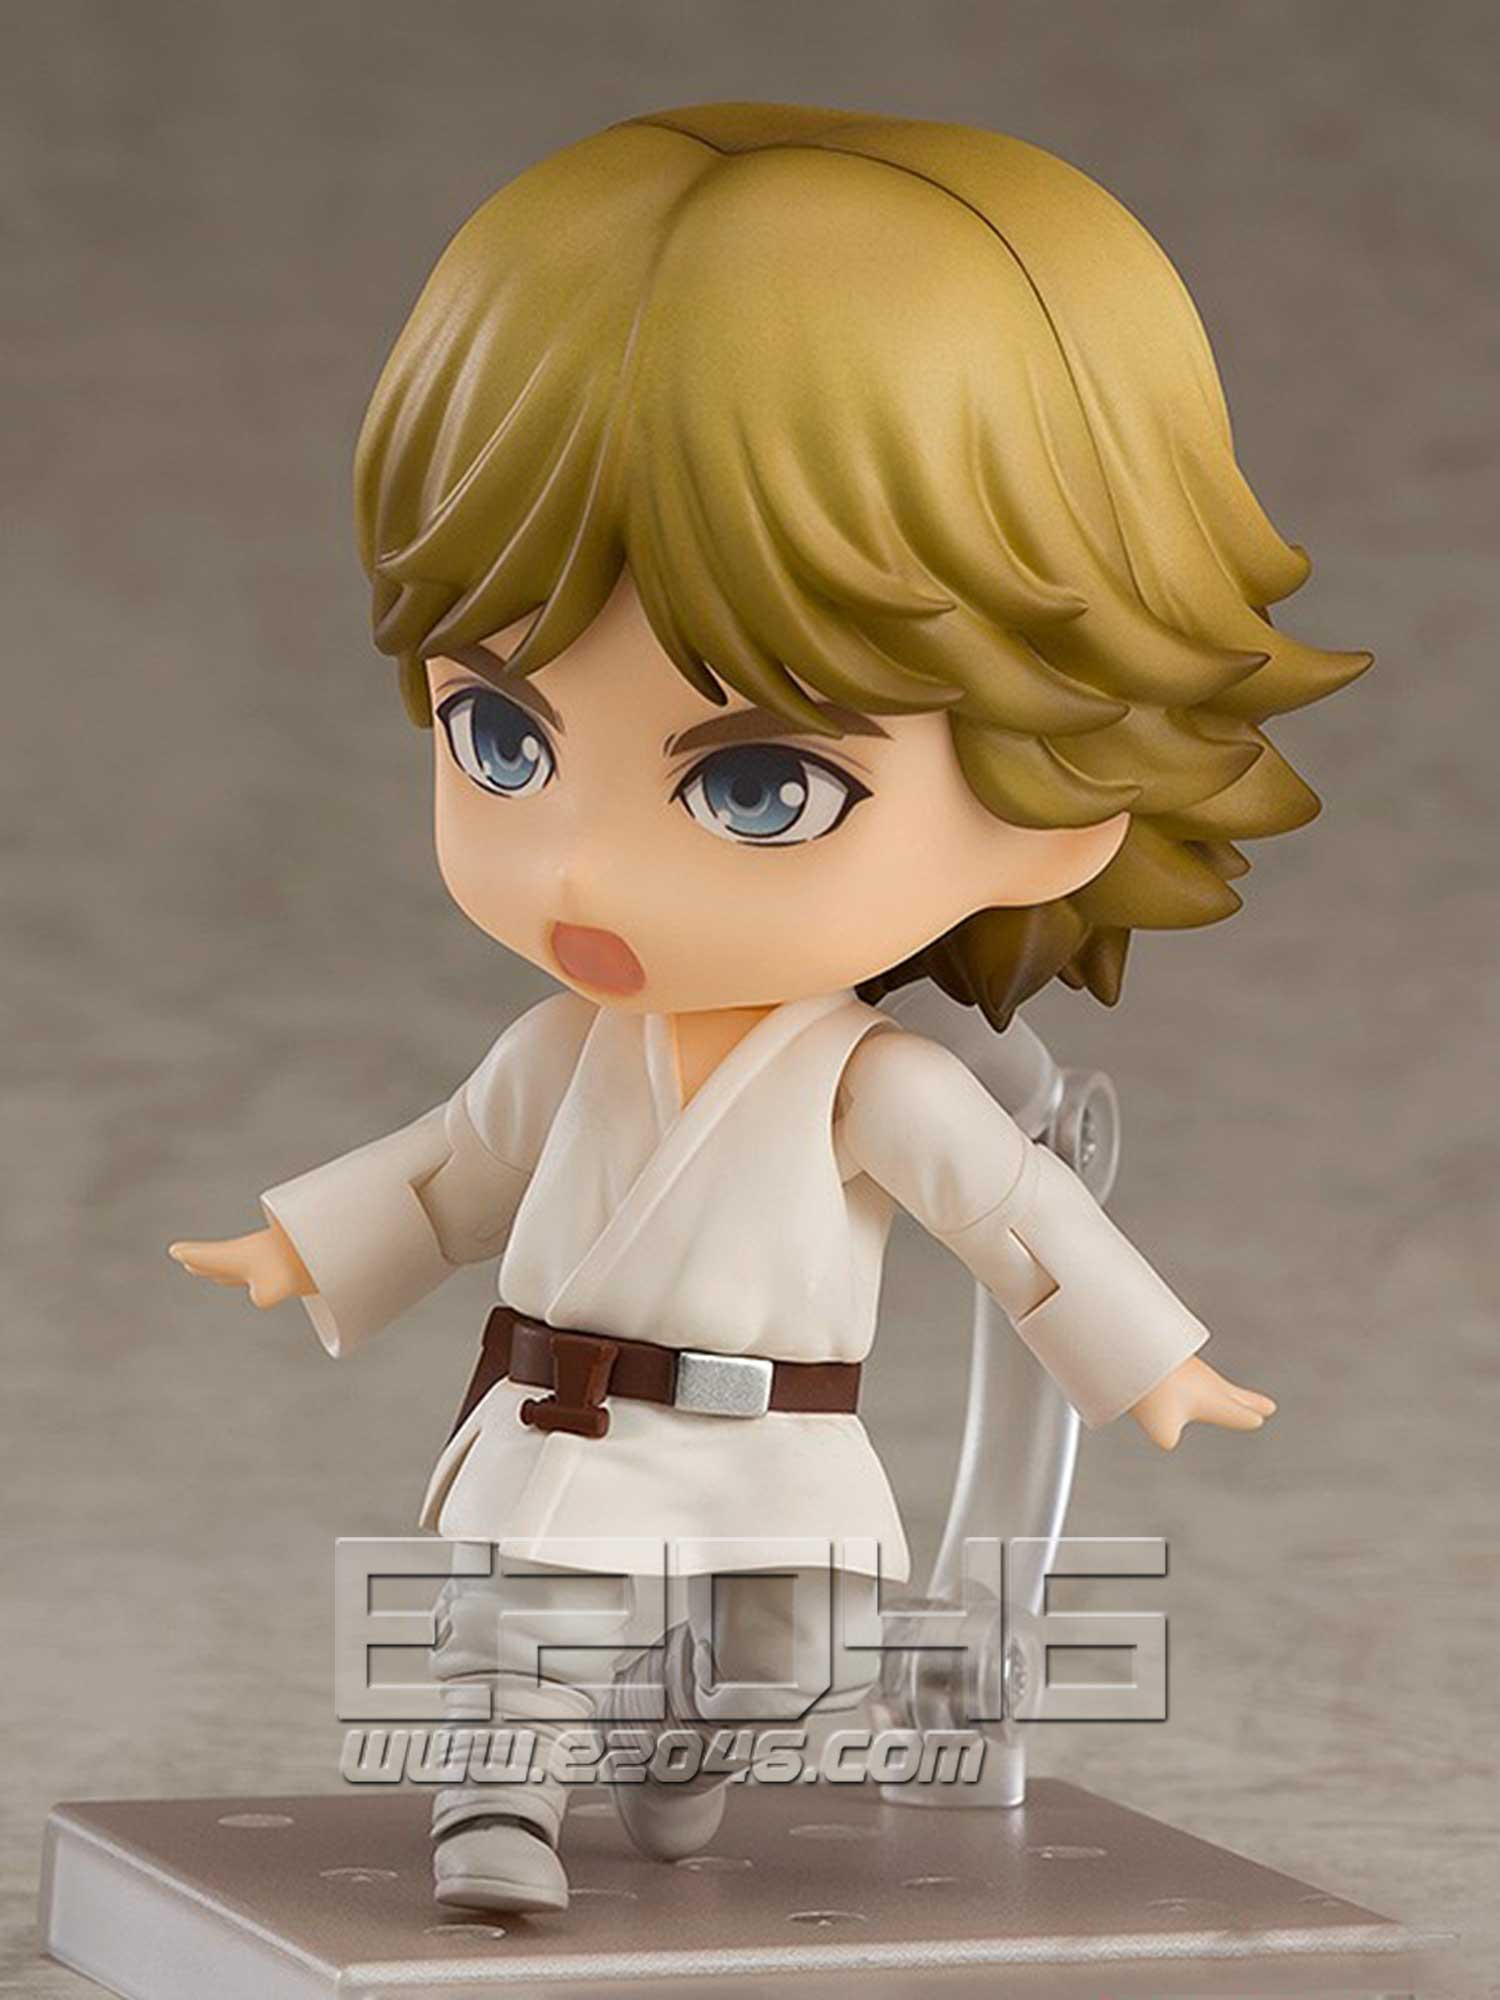 Nendoroid Luke Skywalker (PVC)